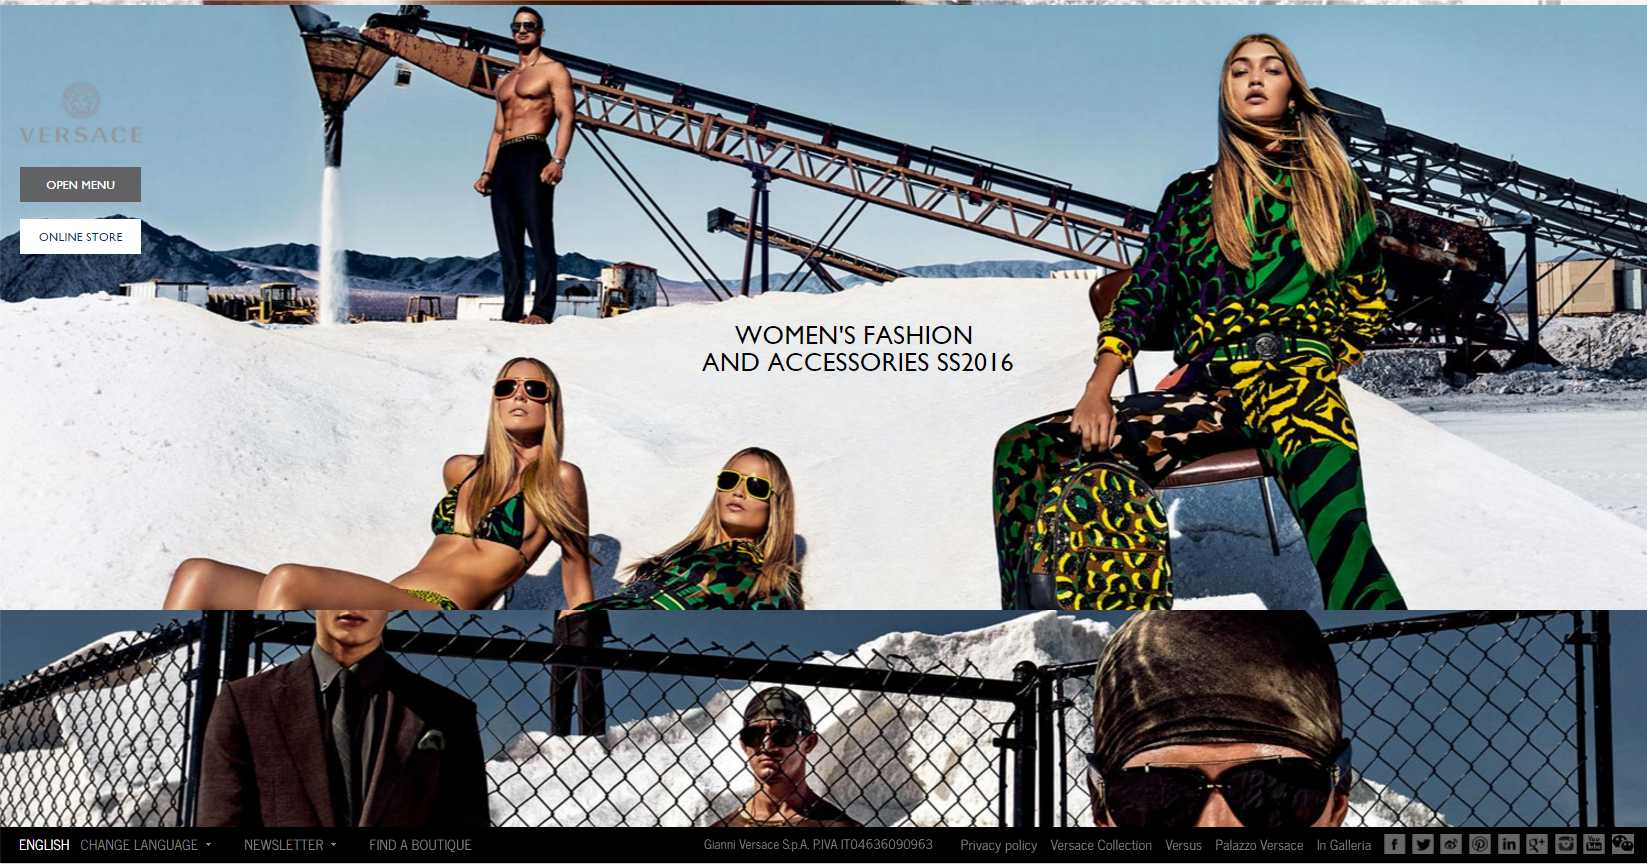 Versace Webpage designed for females